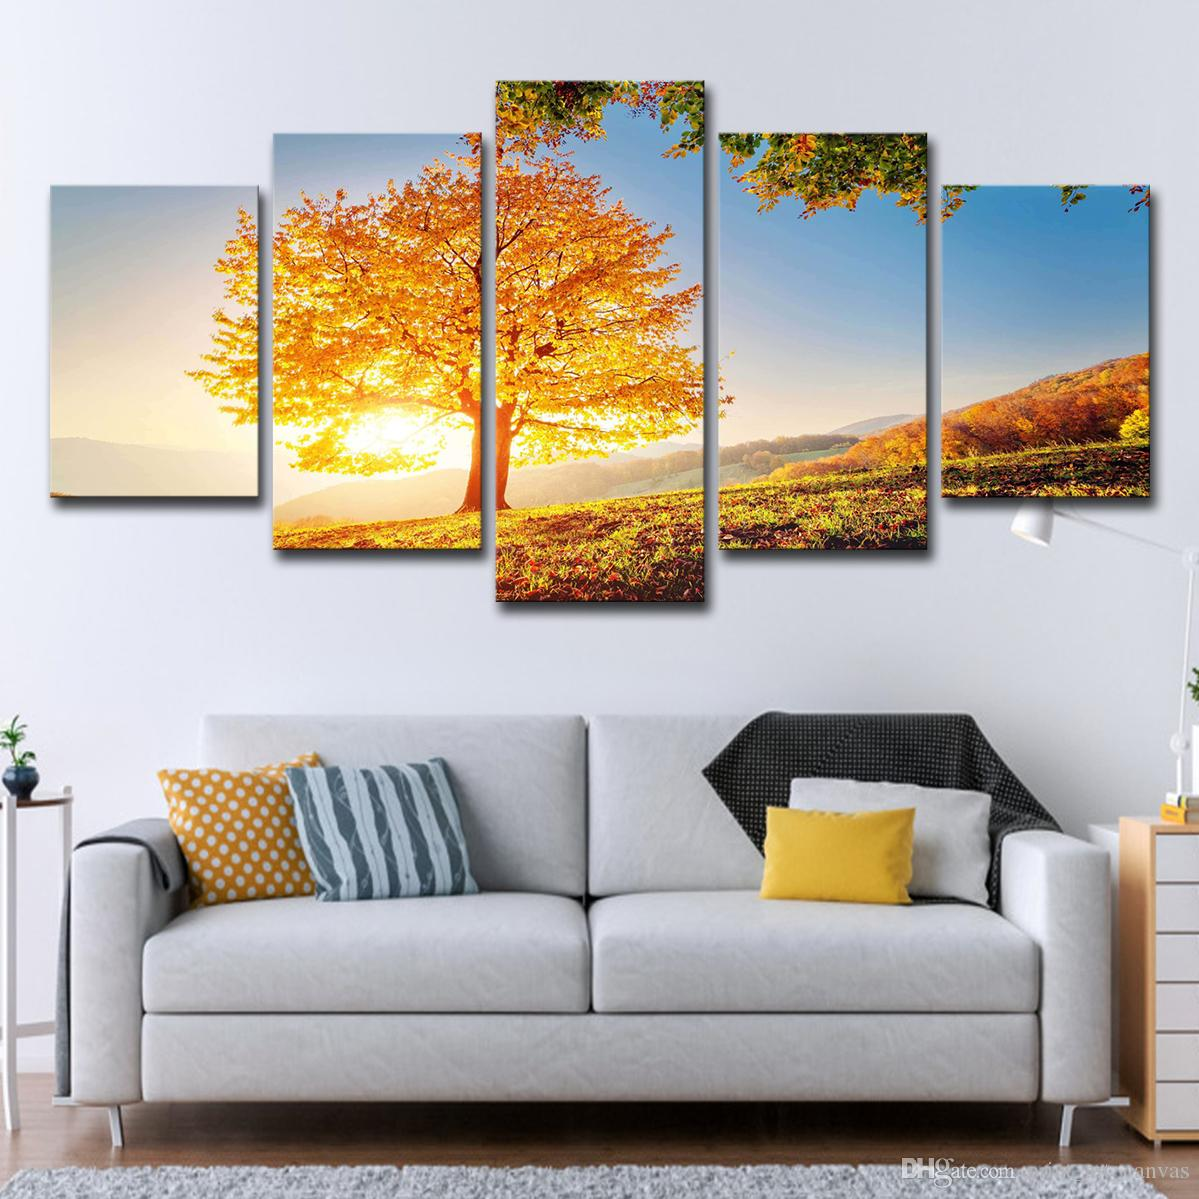 HD Canvas Prints for living Room Golden Tree Wall Art Canvas Painting Pictures